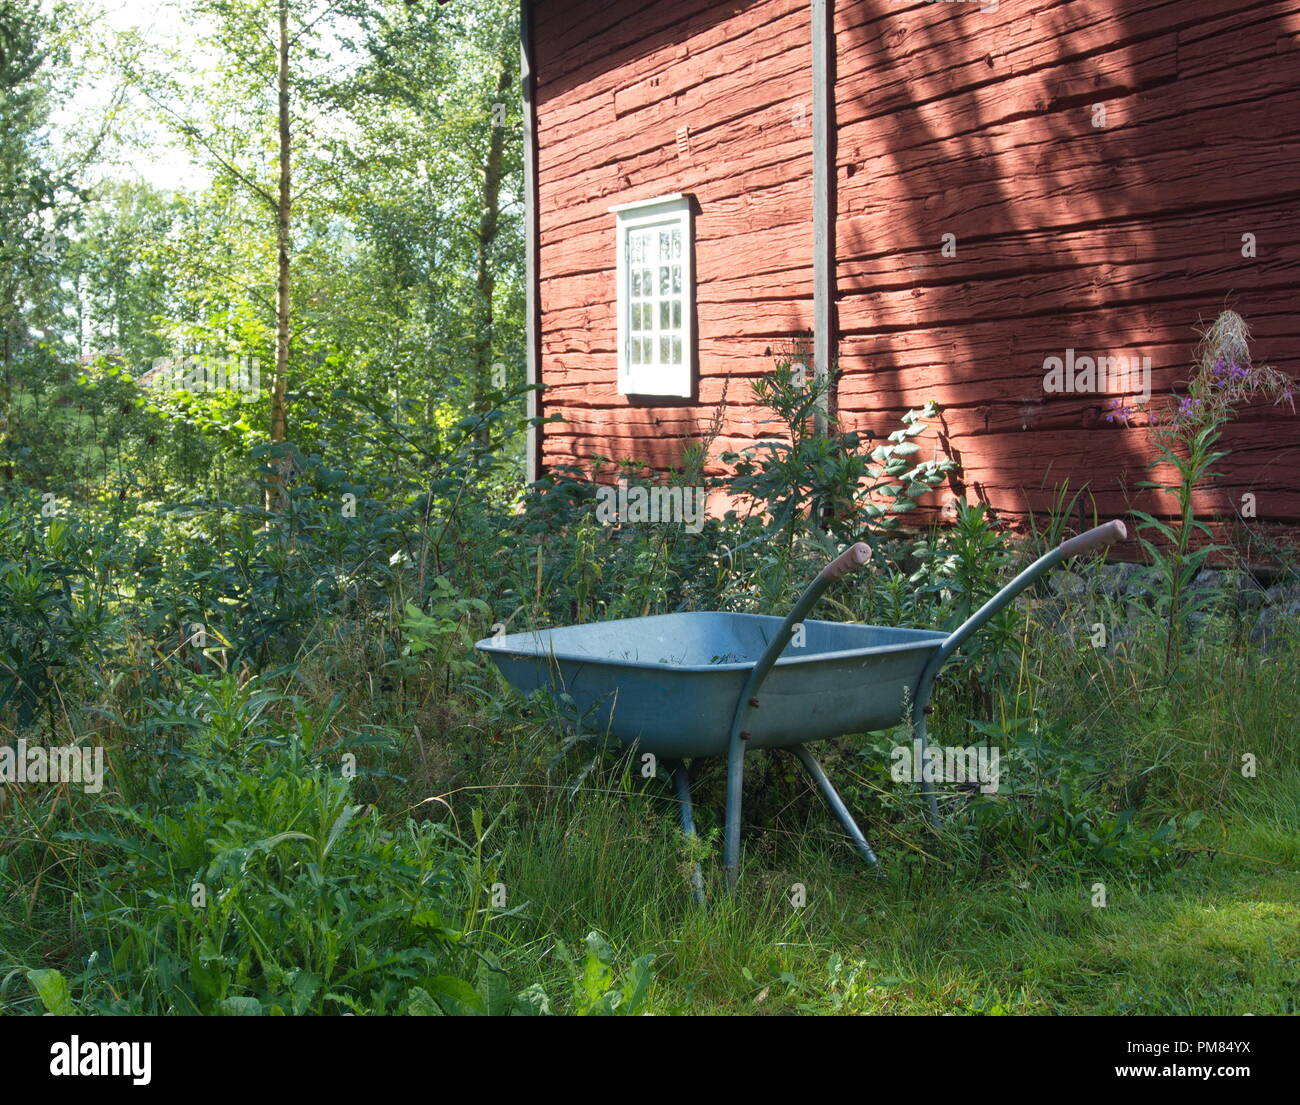 Wheelbarrow with a traditional swedish house in te background. - Stock Image